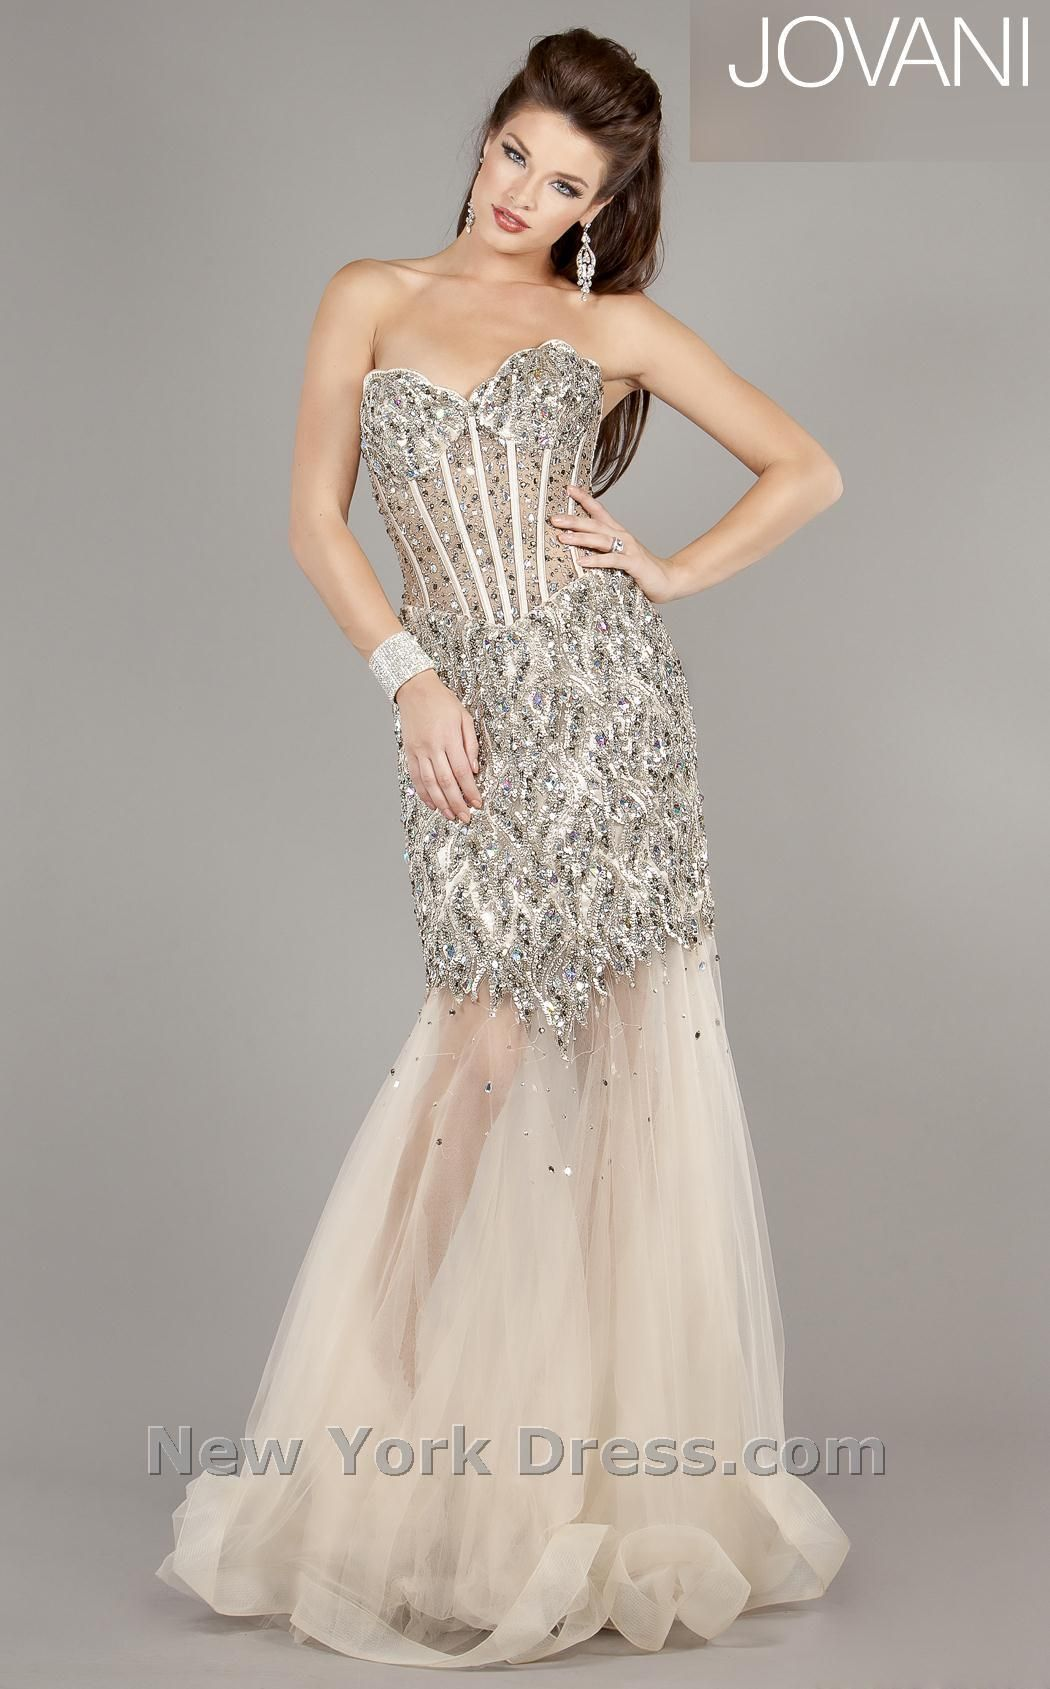 Strapless gown by jovani cbprom pinterest strapless gown